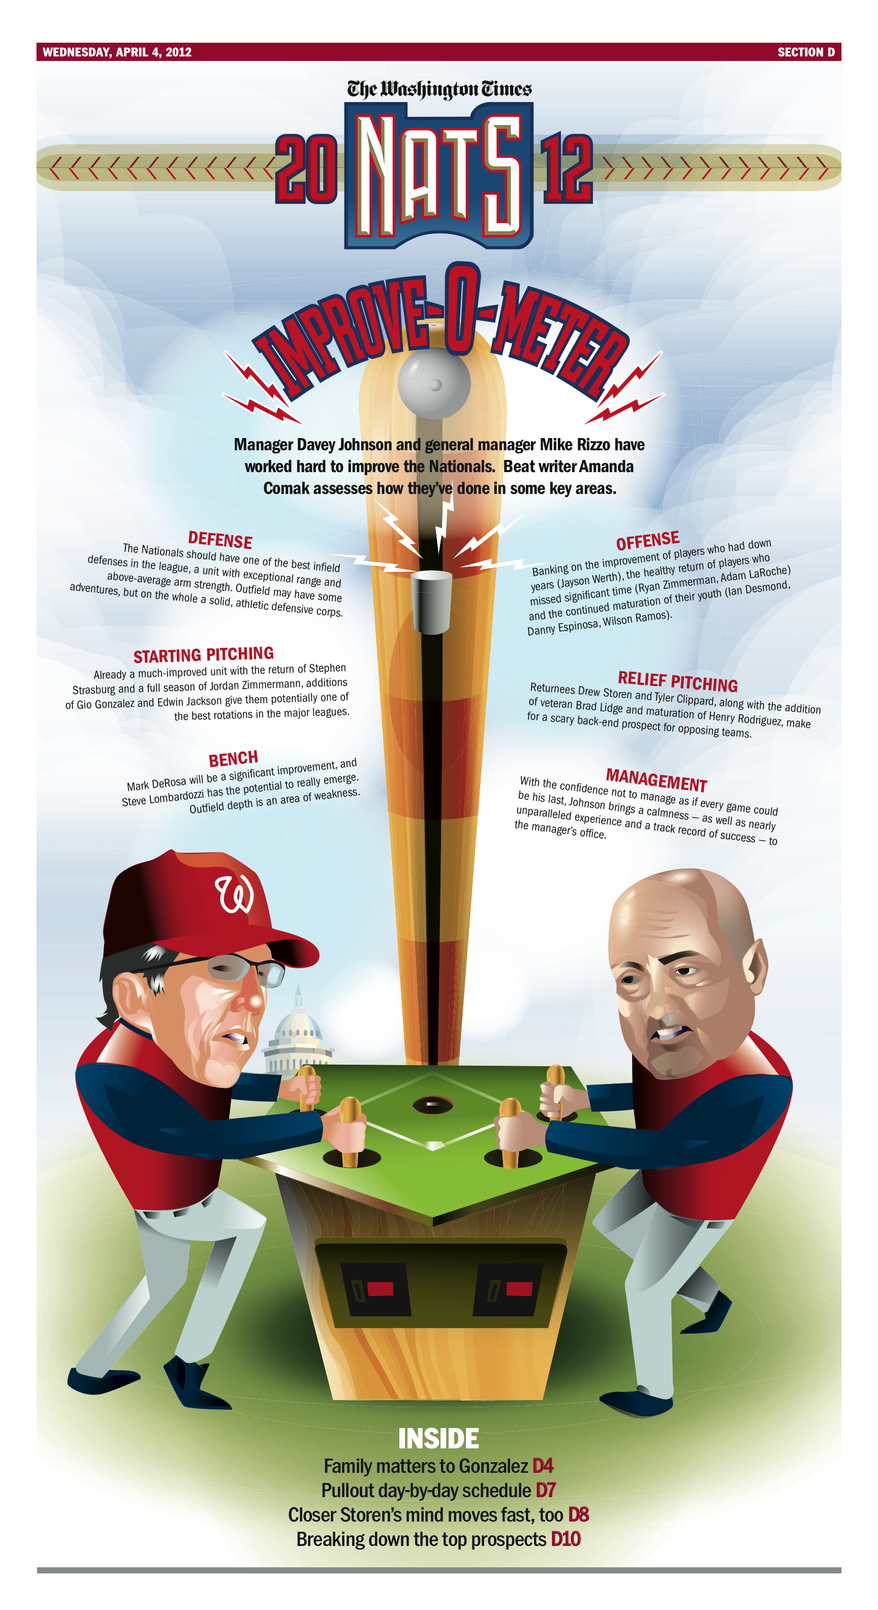 Washington Nationals 2012 preview section.